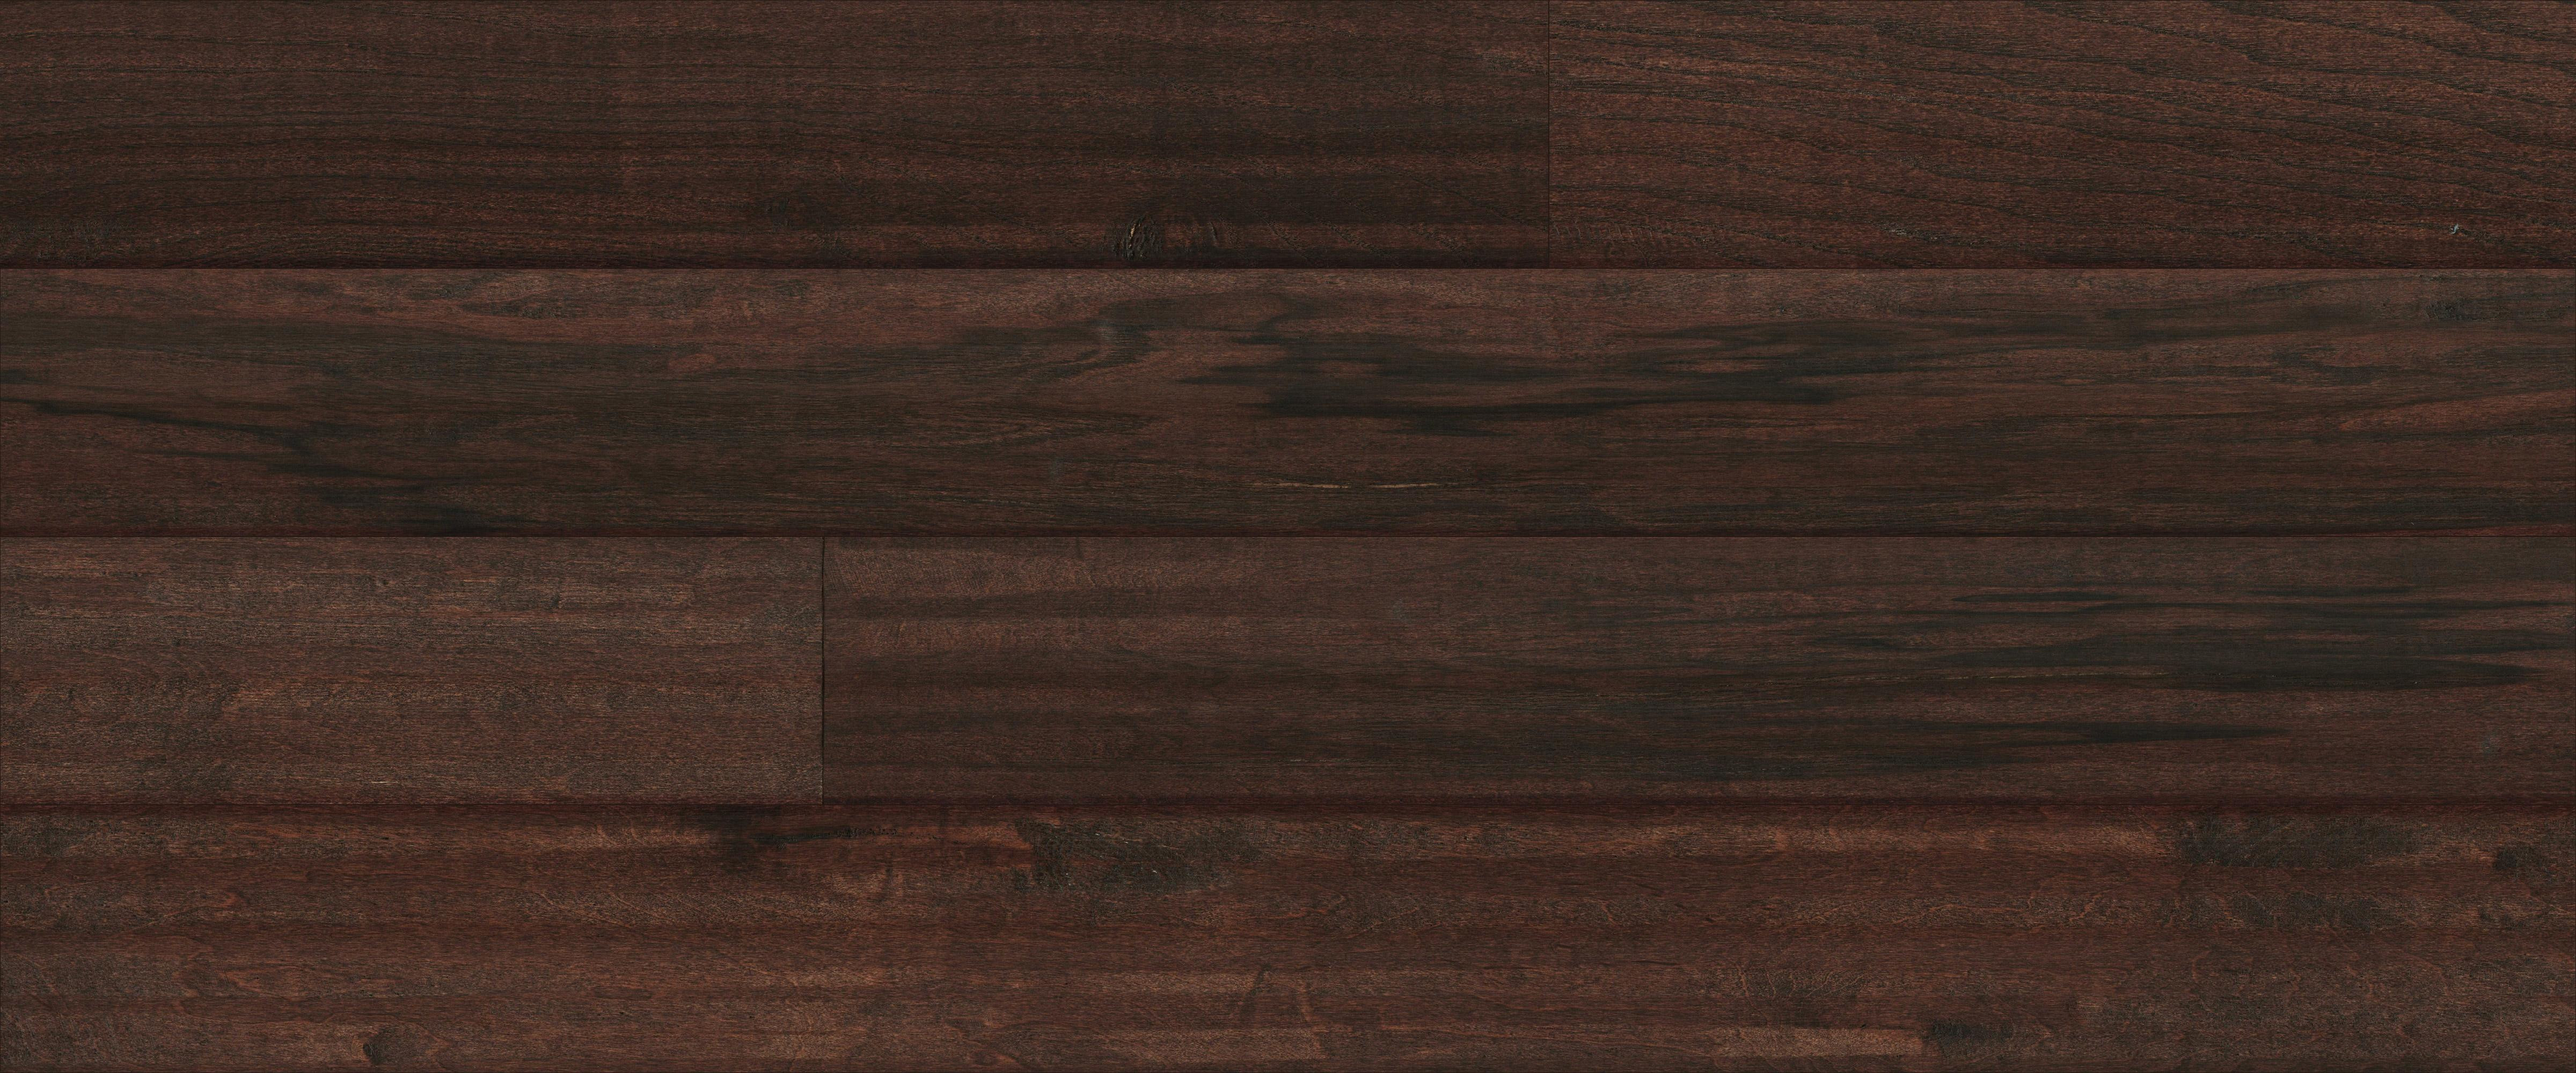 armstrong engineered maple hardwood flooring of mullican lincolnshire sculpted maple cappuccino 5 engineered intended for mullican lincolnshire sculpted maple cappuccino 5 engineered hardwood flooring